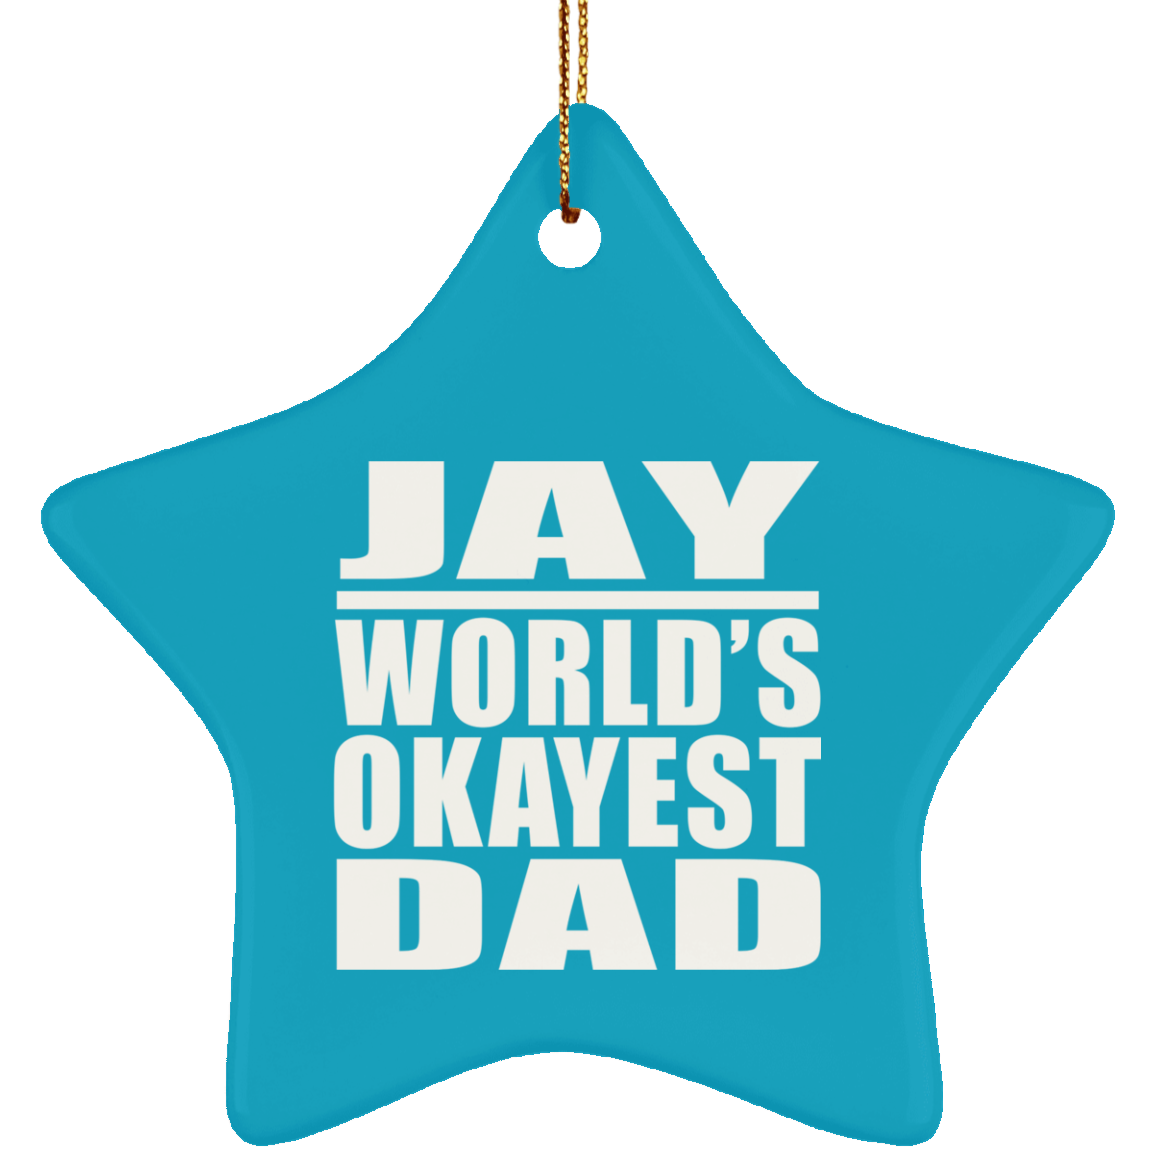 Jay World's Okayest Dad - Star Ornament